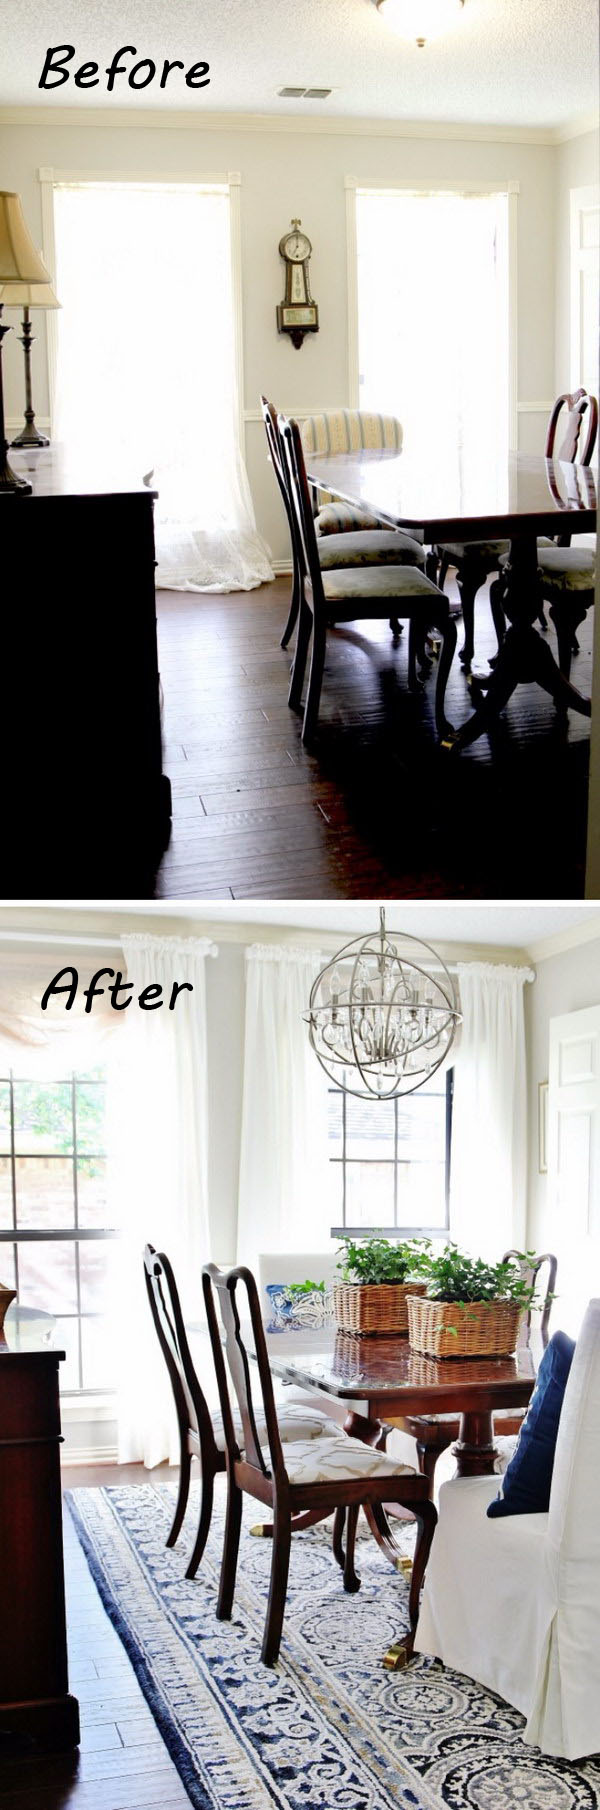 Before and After Dining Room: Lovely Room and So Much Personality.